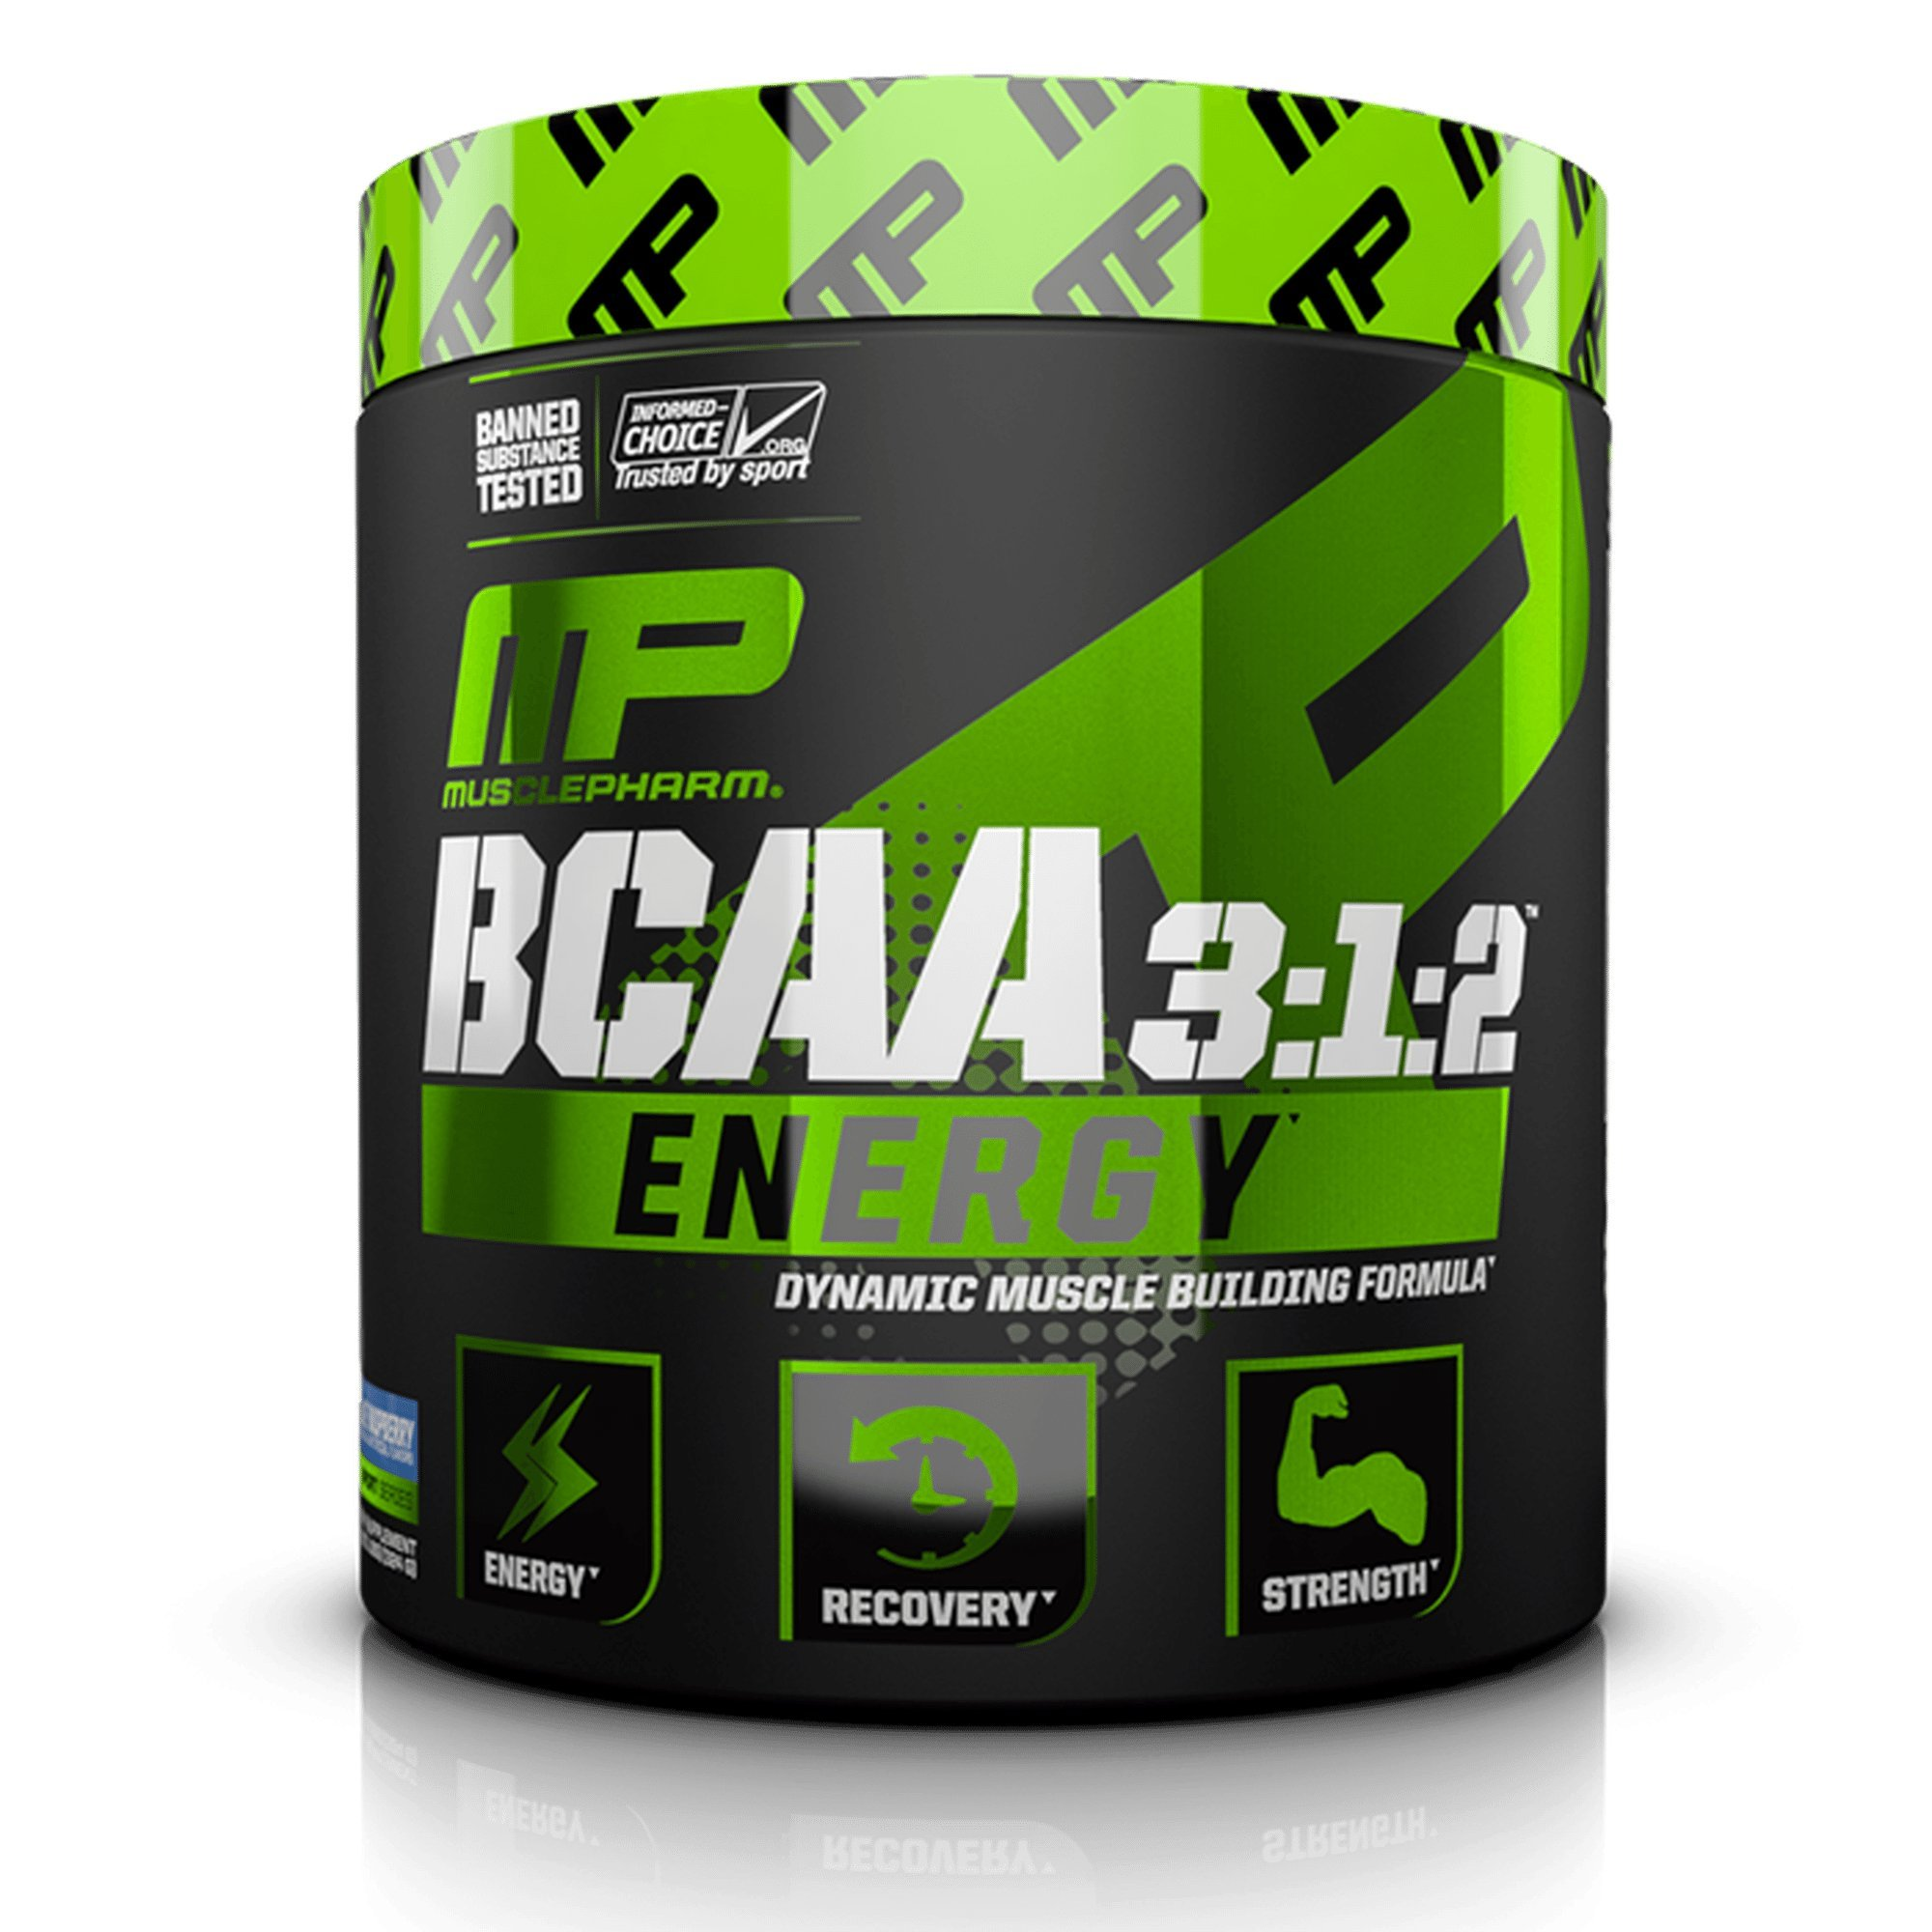 MusclePharm Amino Energy, 6 Grams of BCAA Powder, with Caffeine and Green Tea, BCAA Energy for Pre Workout or Anytime Energy, Blue Raspberry, 30 Servings by Muscle Pharm (Image #1)